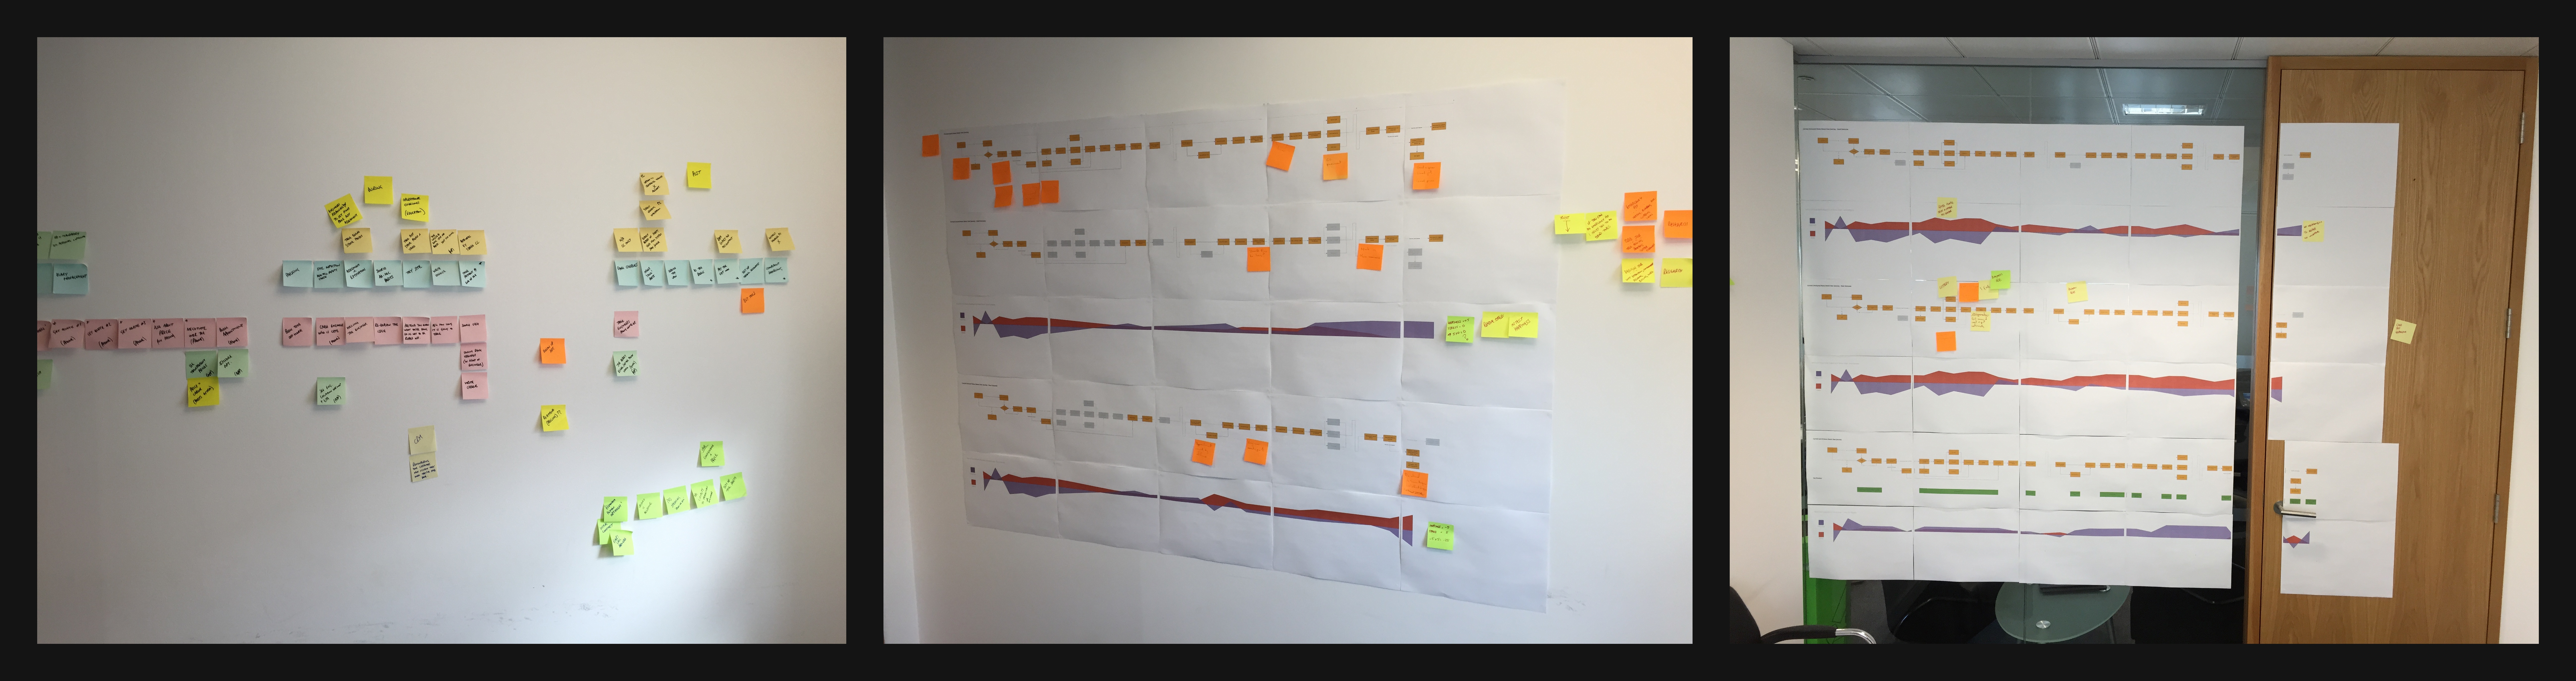 Photos showing various Customer Journey output documents on the wall around the office